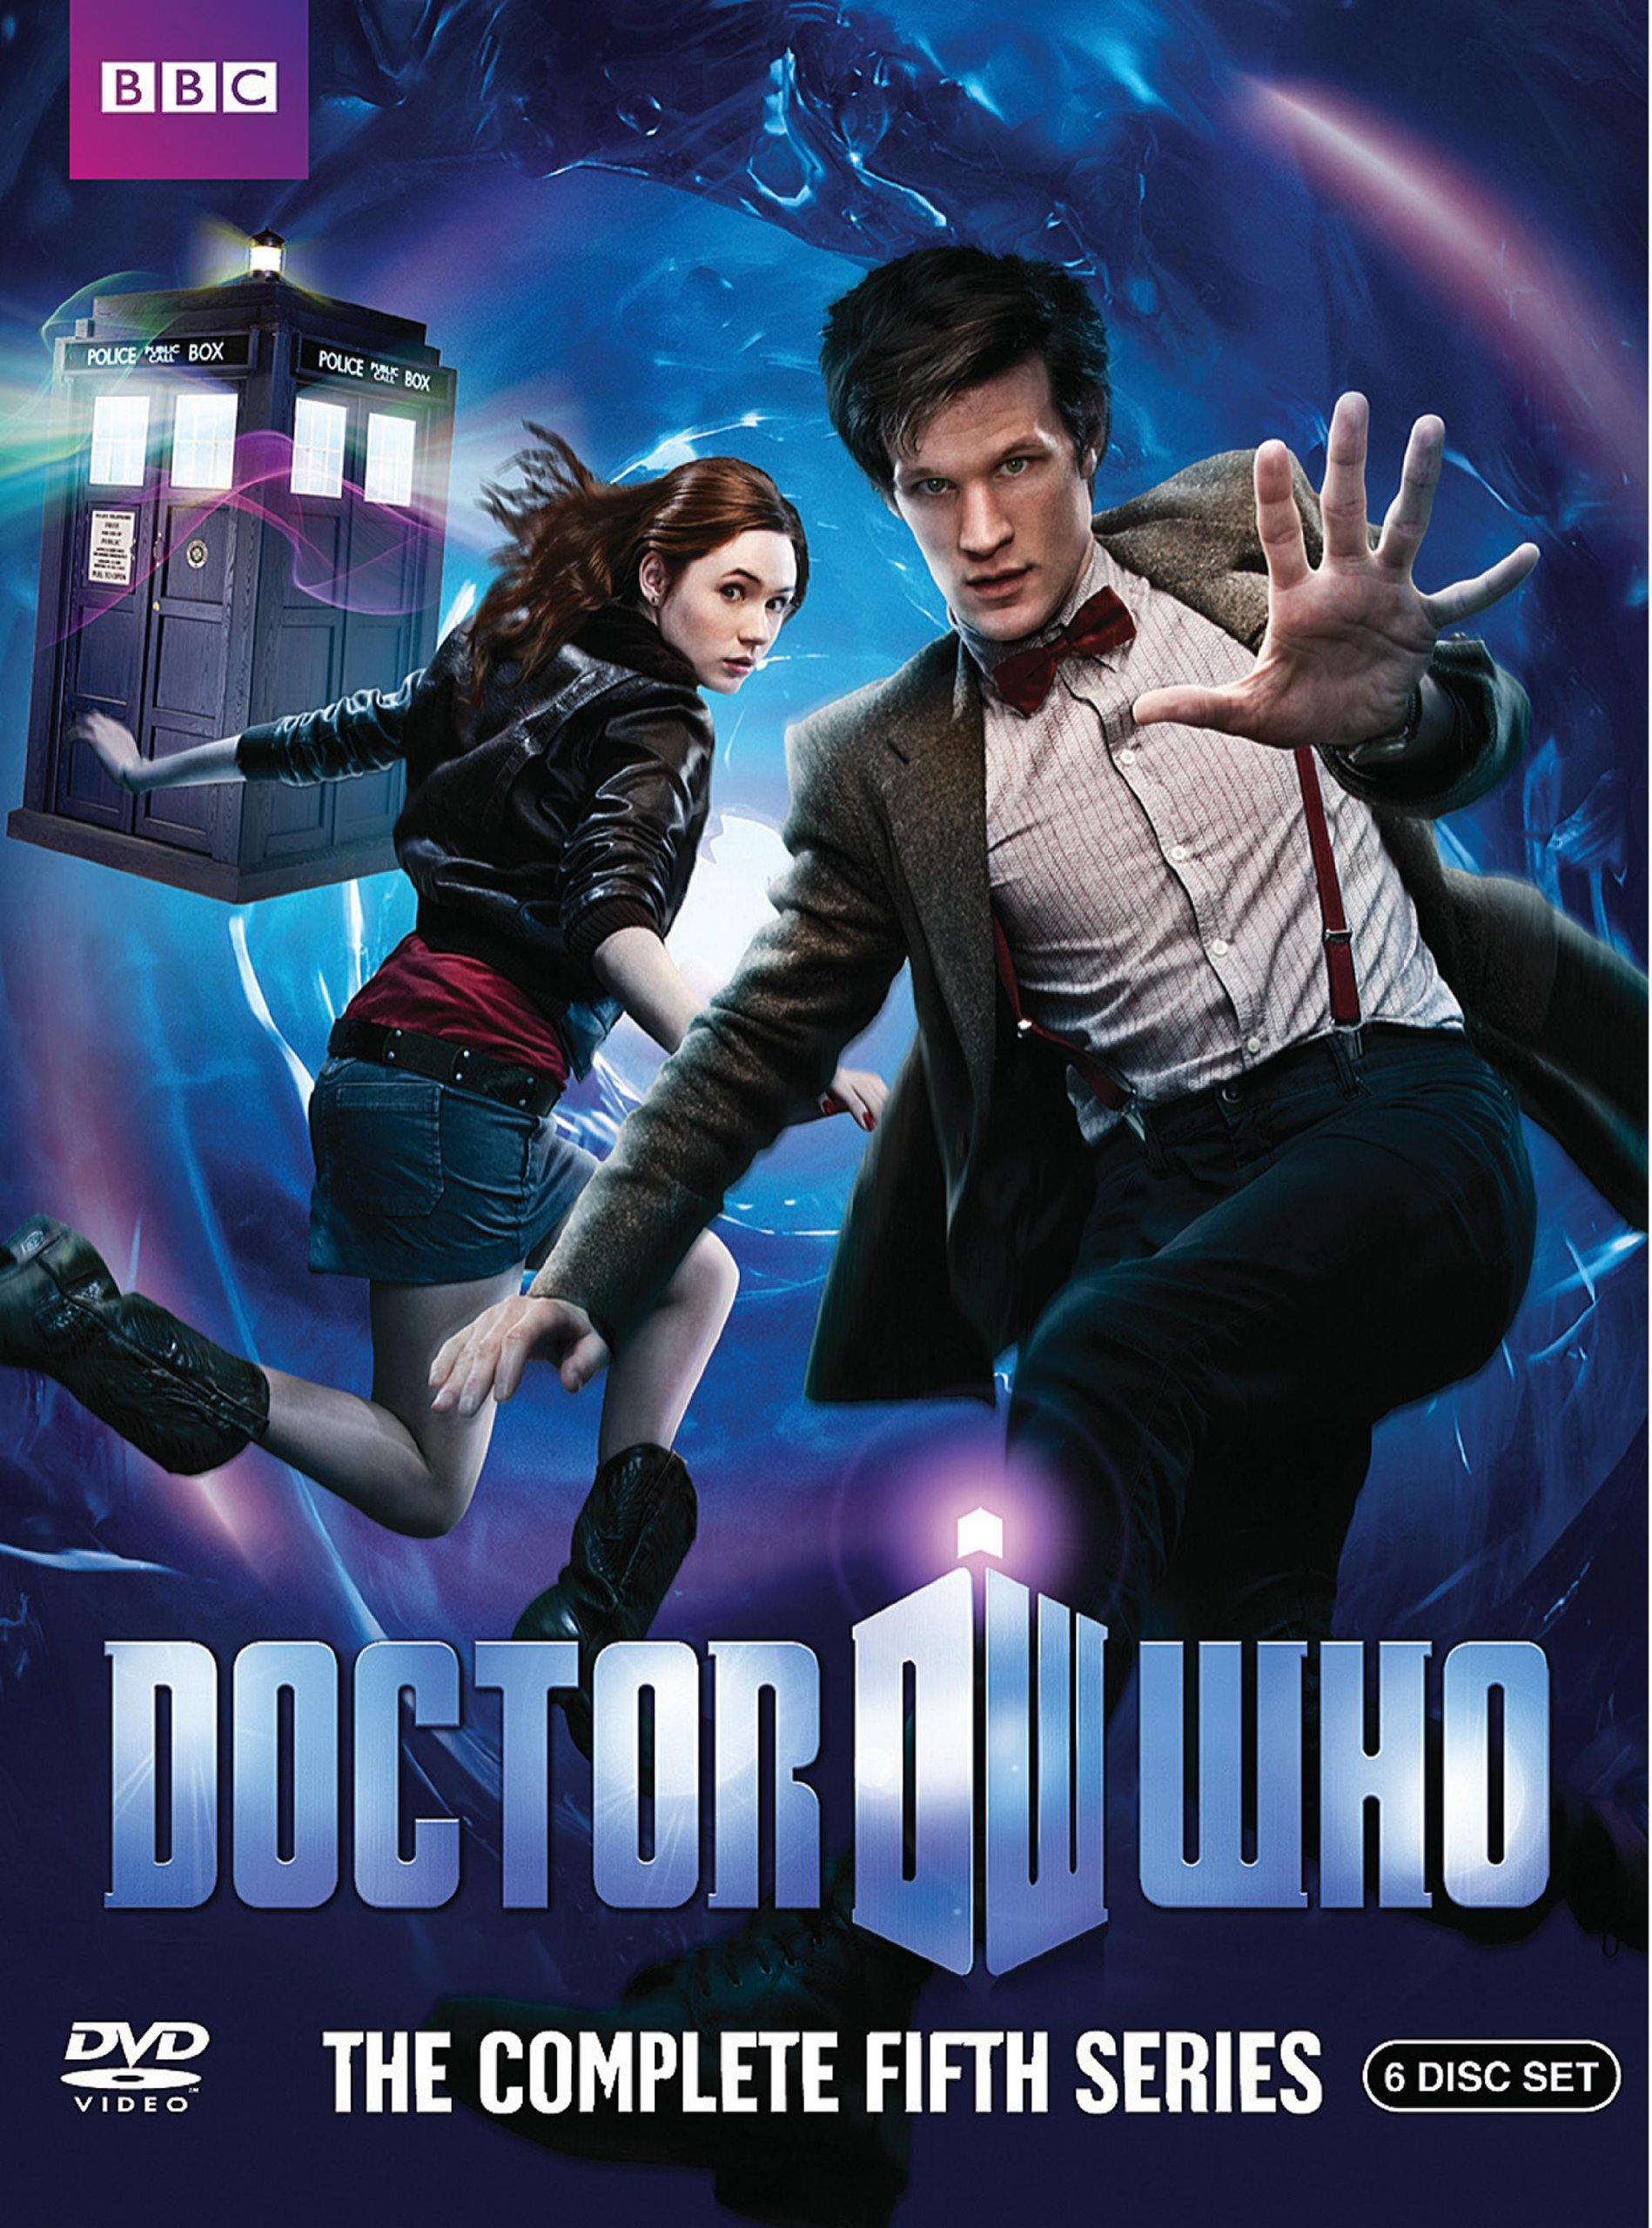 """Doctor Who Series 5"" DVD cover."